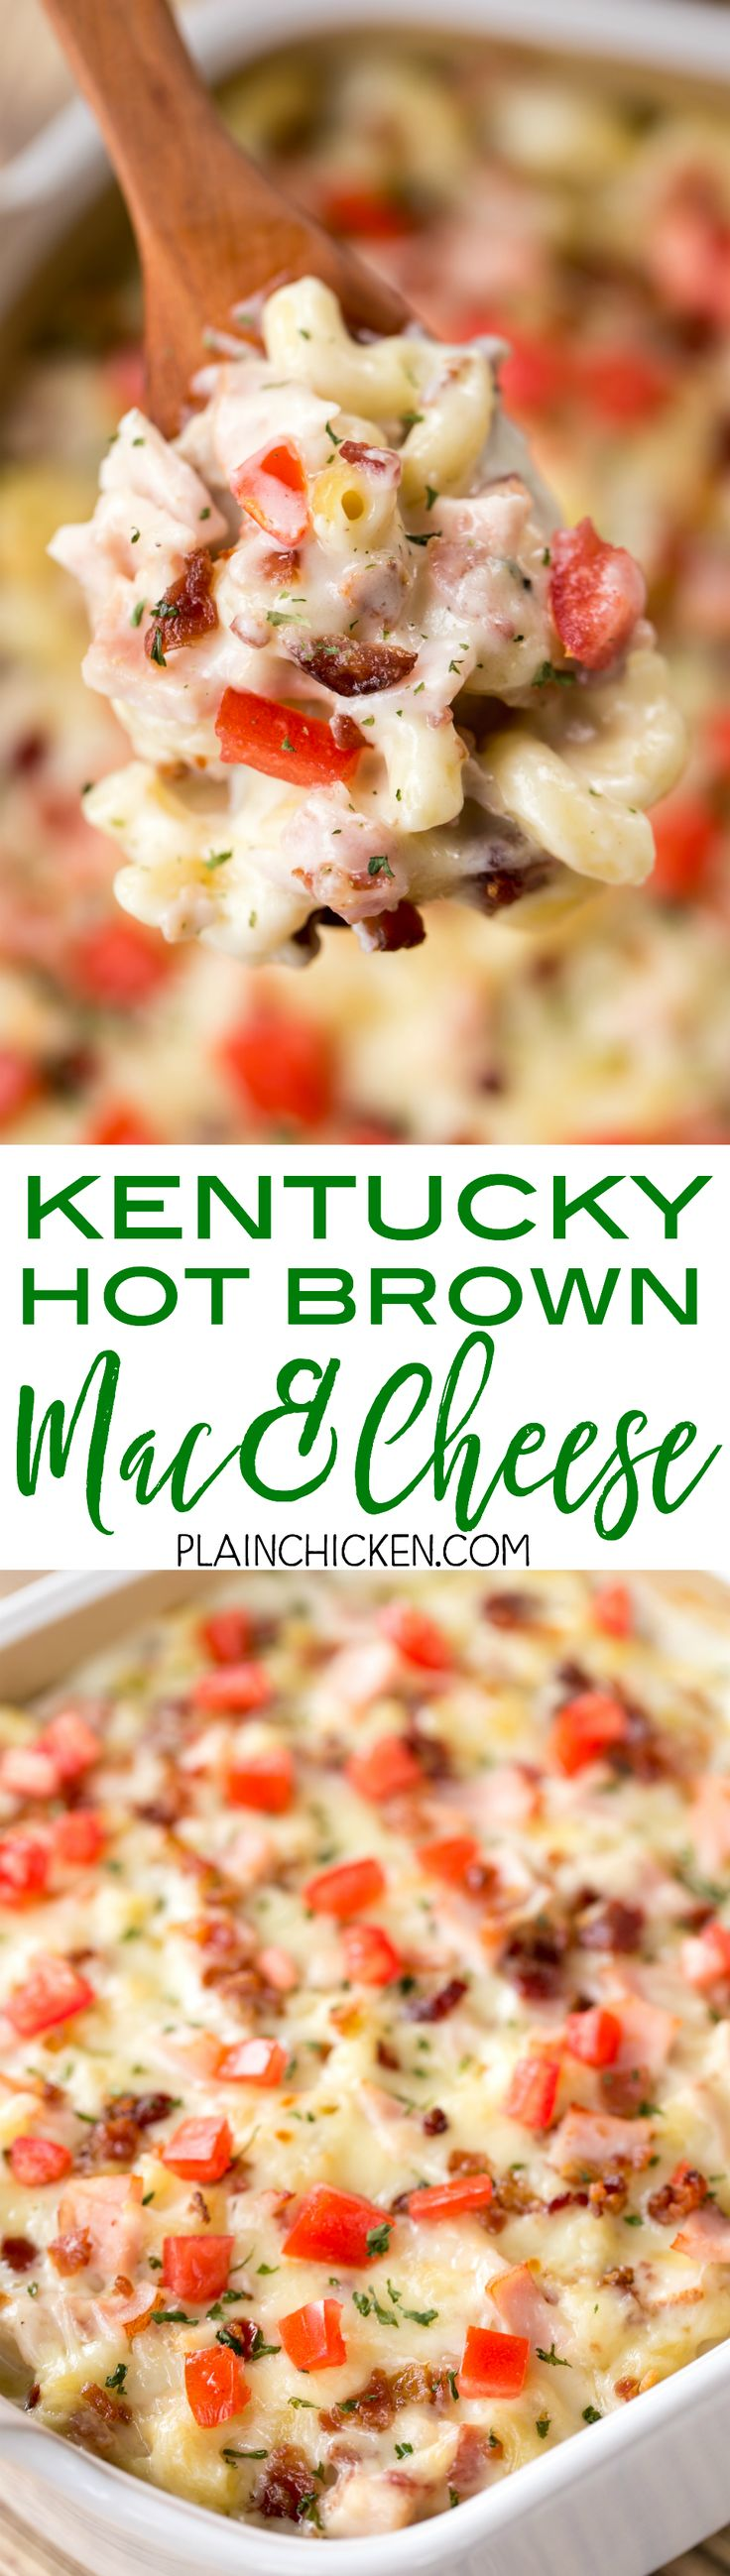 Kentucky Hot Brown Mac and Cheese - THE BEST!!! We ate this two weeks in a row. Seriously DELICIOUS! Macaroni, flour, butter, onion, salt, pepper, milk, gruyere cheese, turkey, bacon, tomatoes. All the flavors of a  Kentucky Hot Brown Sandwich in pasta. Everyone cleaned their plate and went back for seconds. This is a new favorite. GREAT macaroni and cheese recipe!